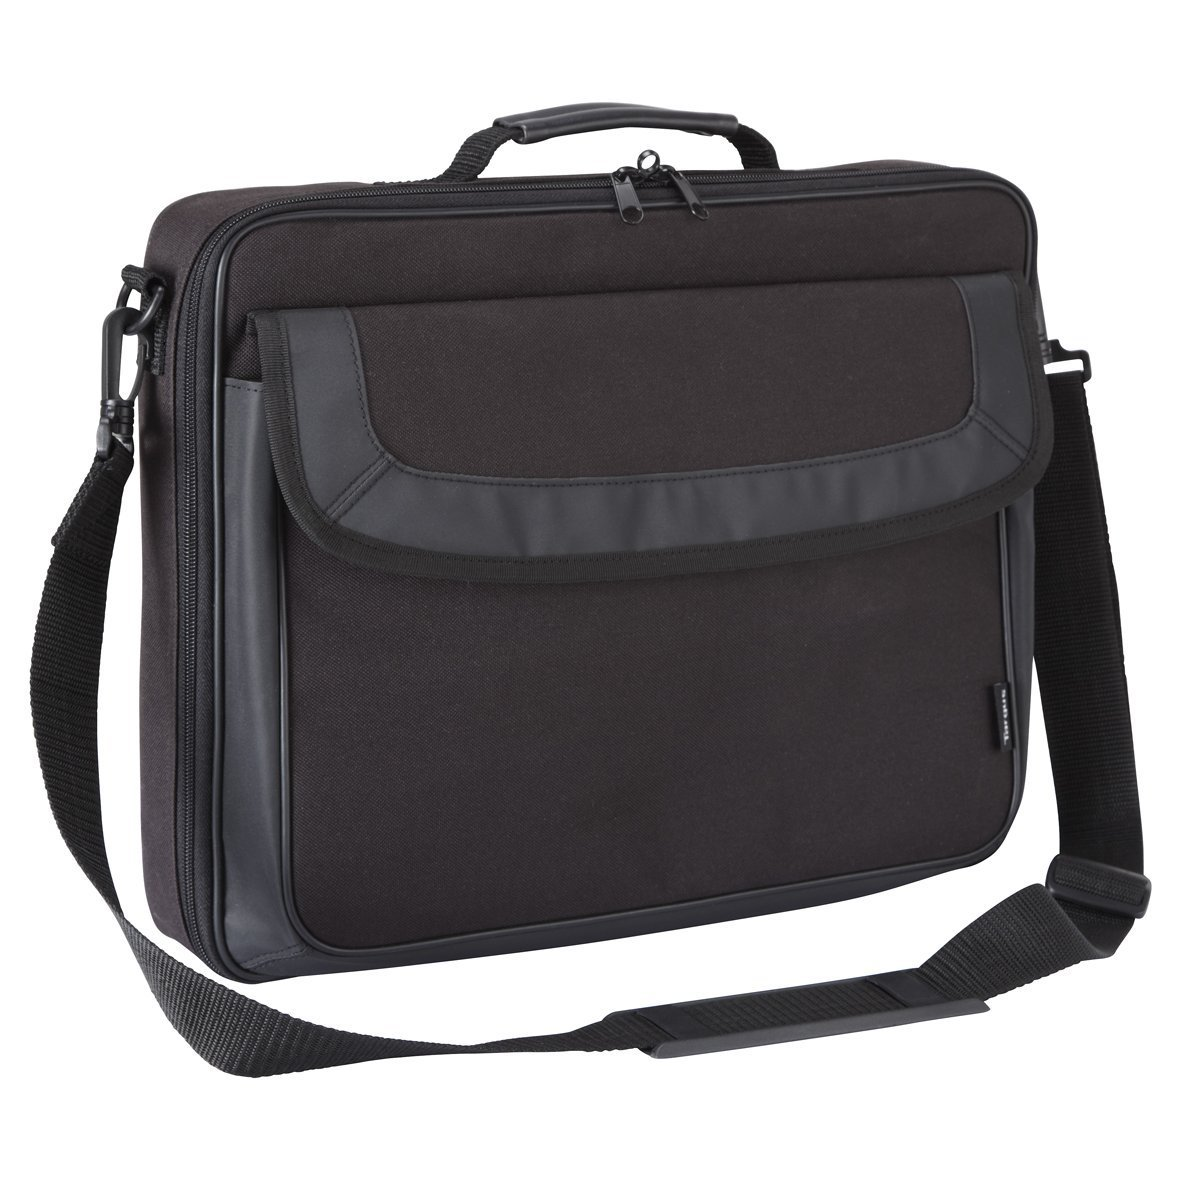 15.6 inch Laptop Sleeve Bag Case Cover For Apple HP DELL Toshiba ... 204d3ae48e9a